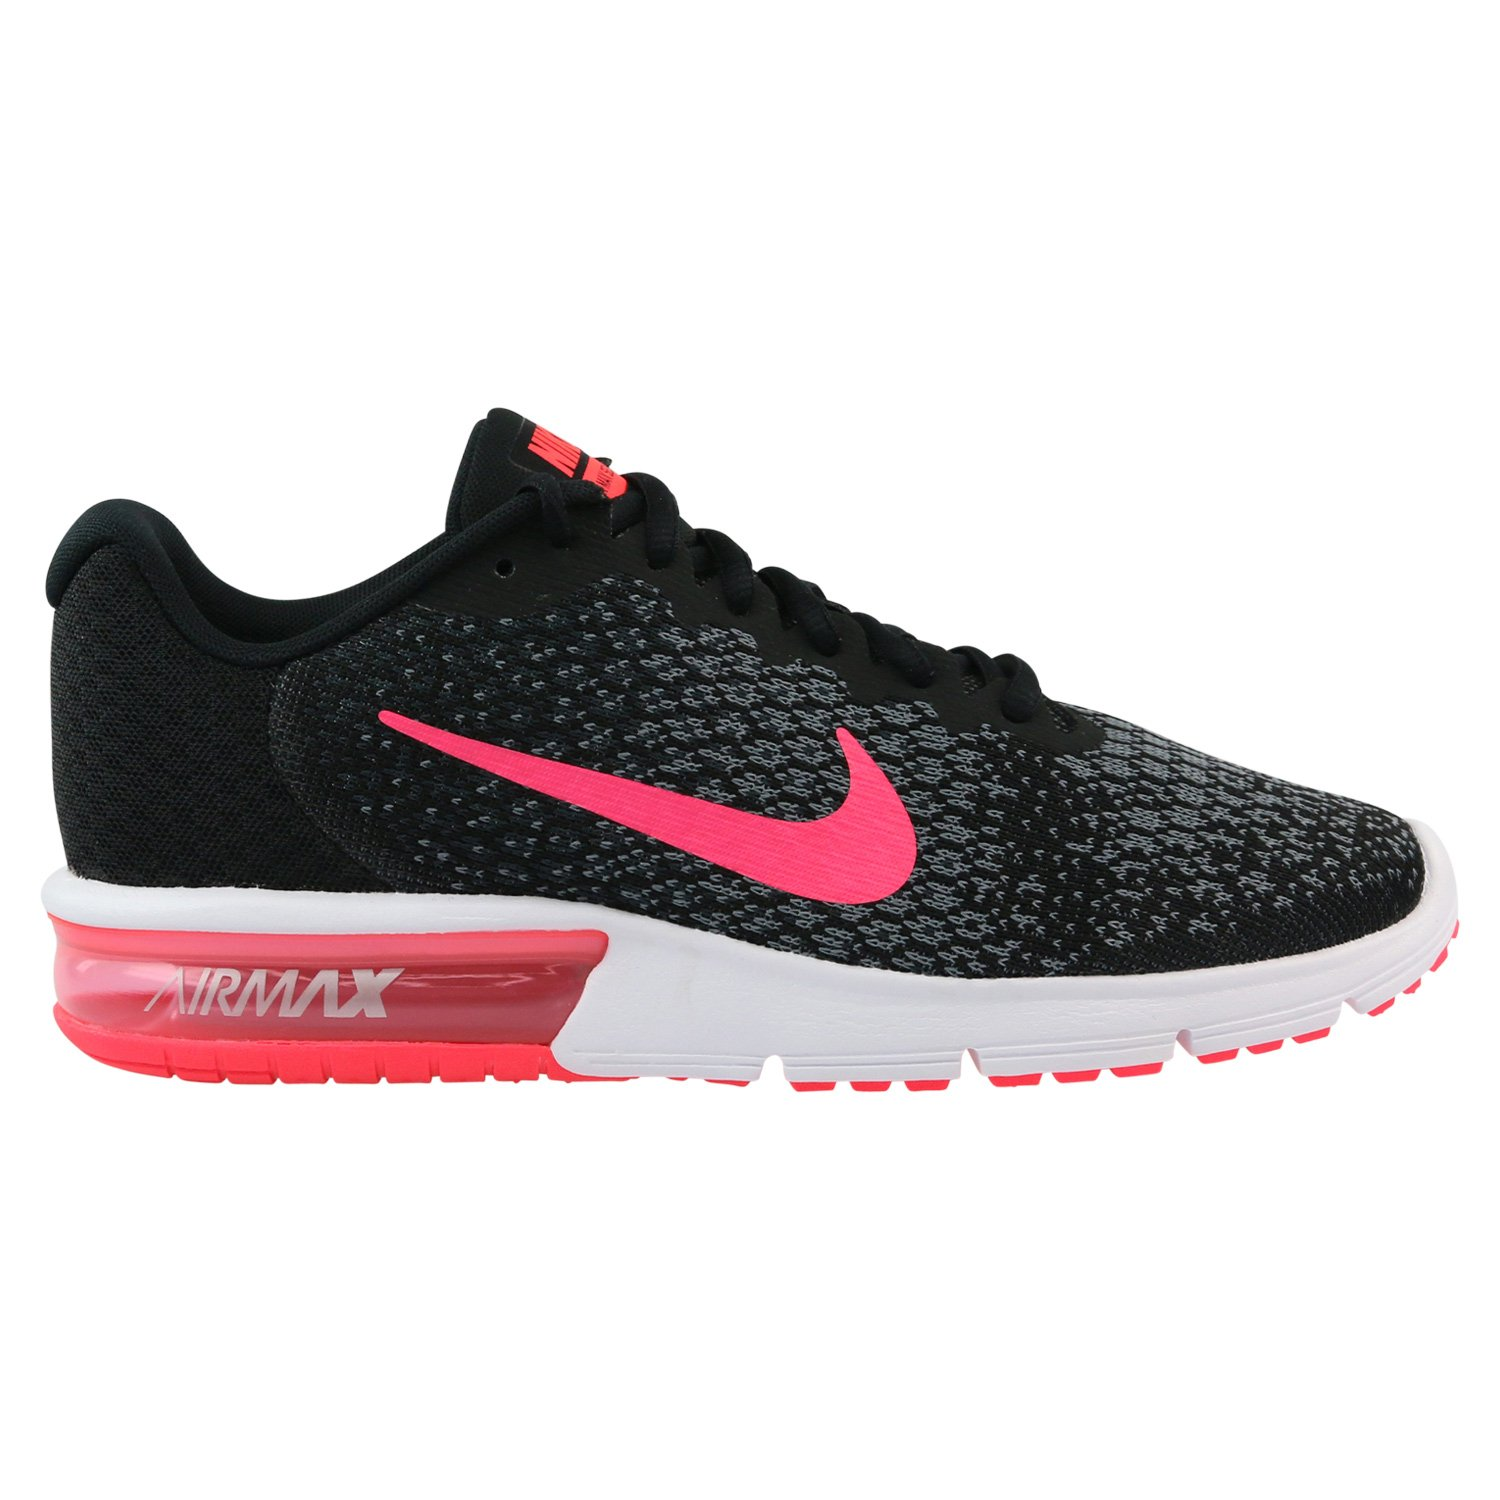 sports shoes 78cf1 15ca1 Galleon - Nike Women s Air Max Sequent 2 Running Shoe Black Racer  Pink Anthracite Cool Grey (9.5 B(M) US)